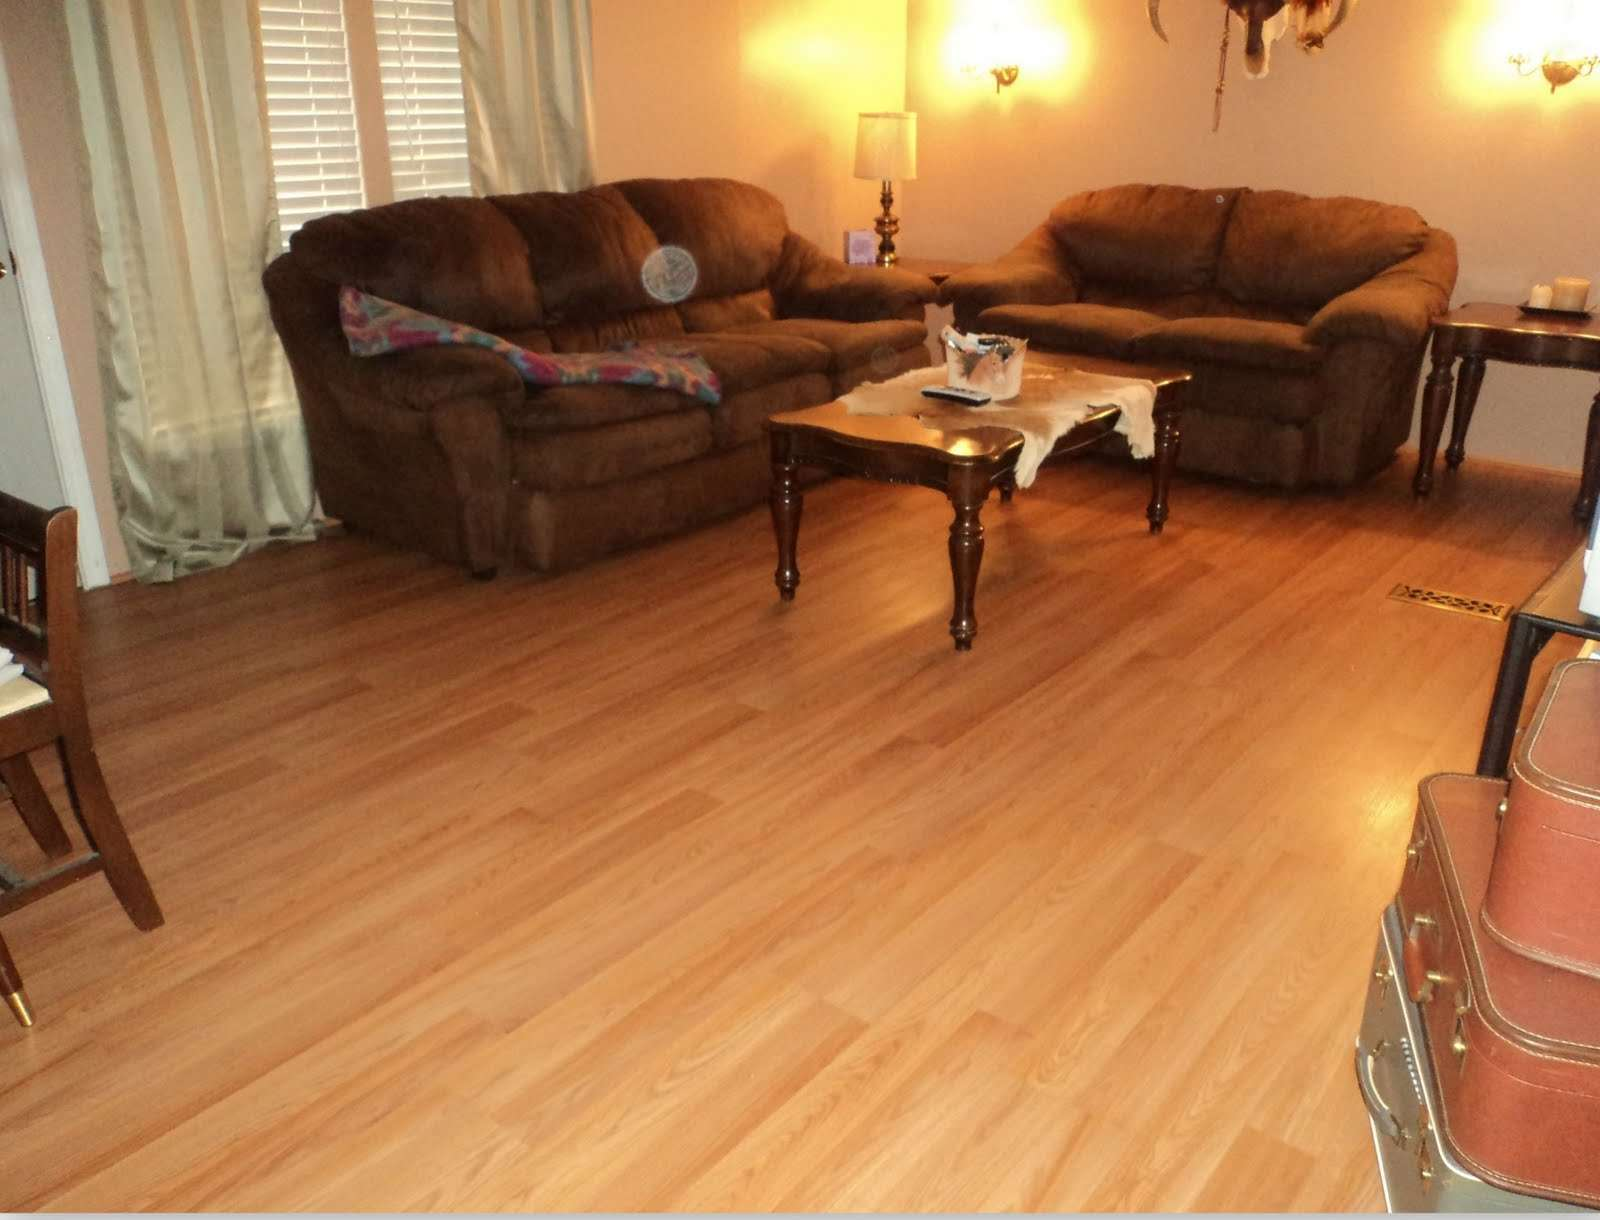 Living room decorating design living room flooring ideas - Hardwood floor living room design ...